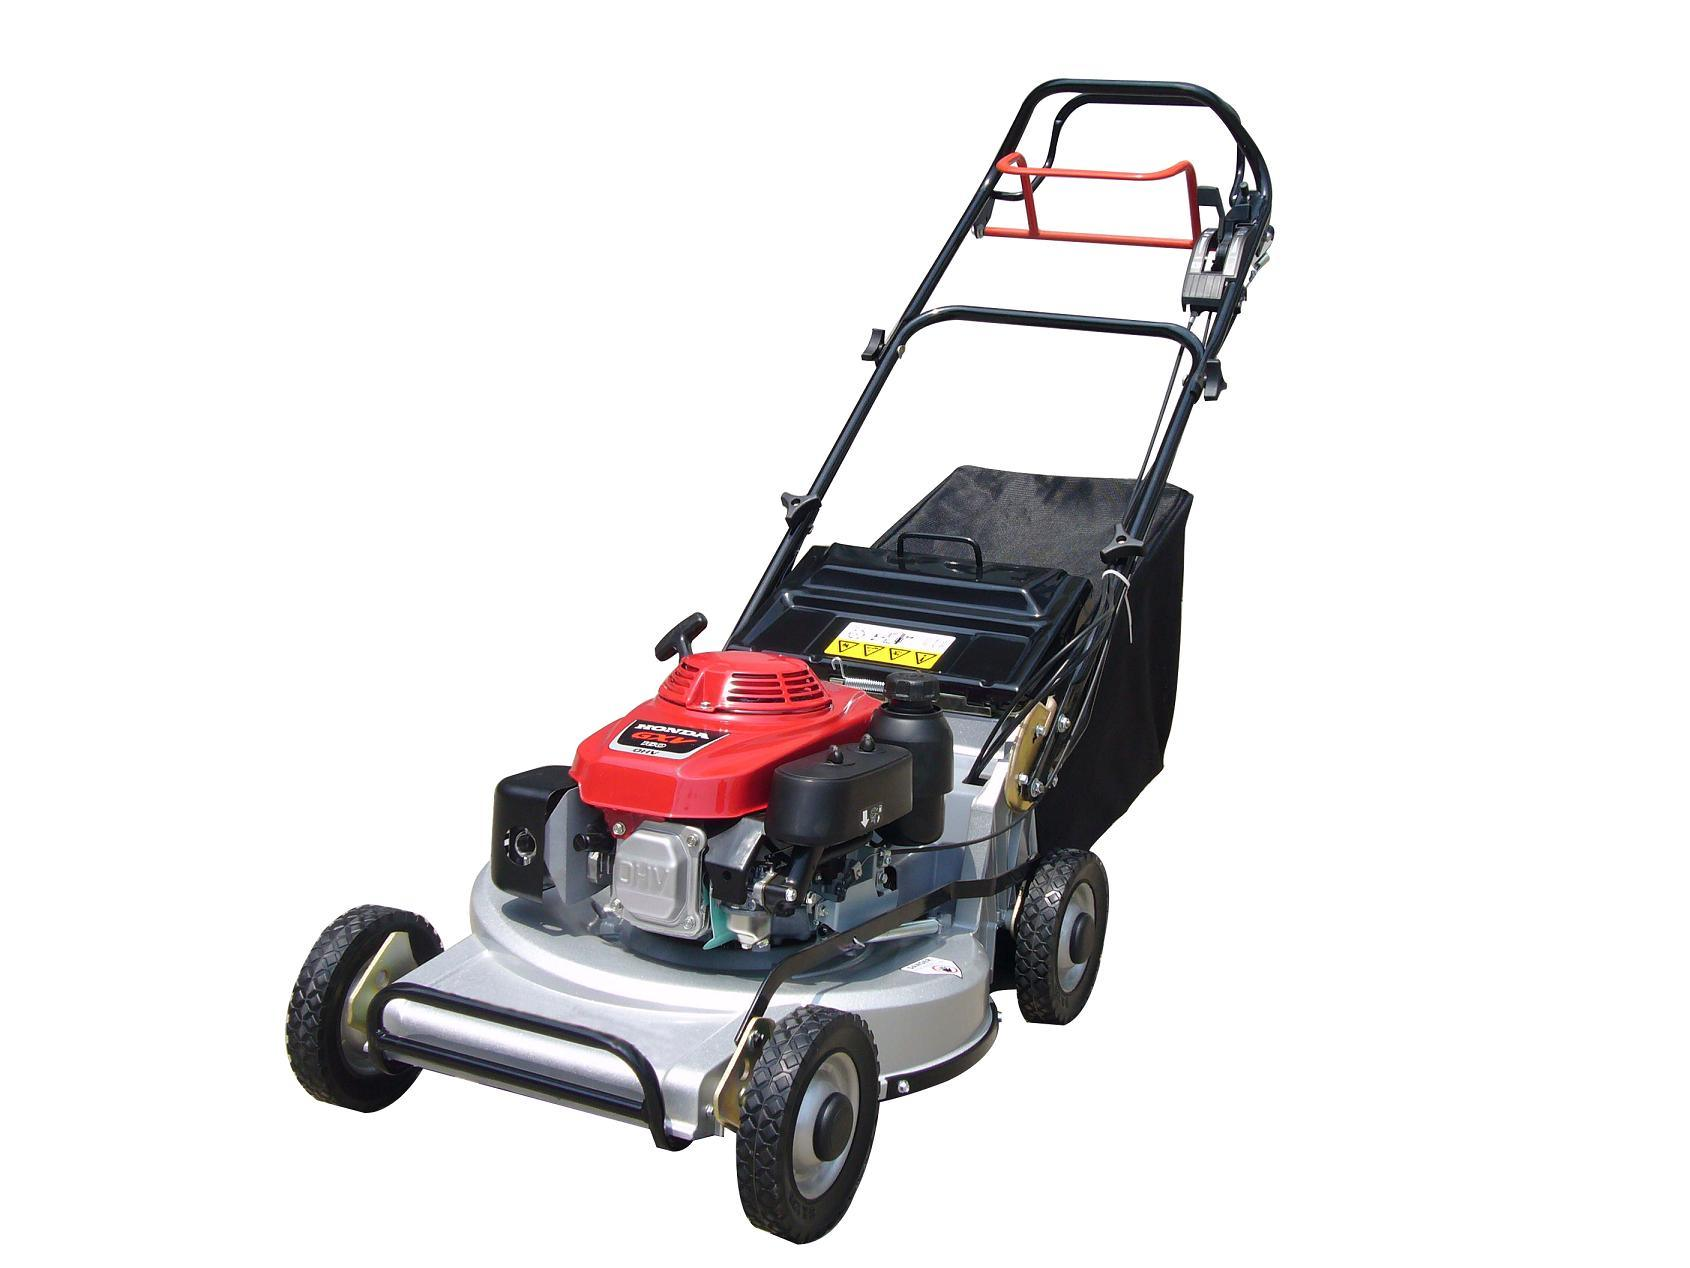 Riding Lawn Mowers @ Mowers Direct.com - Riding Lawn Mowers